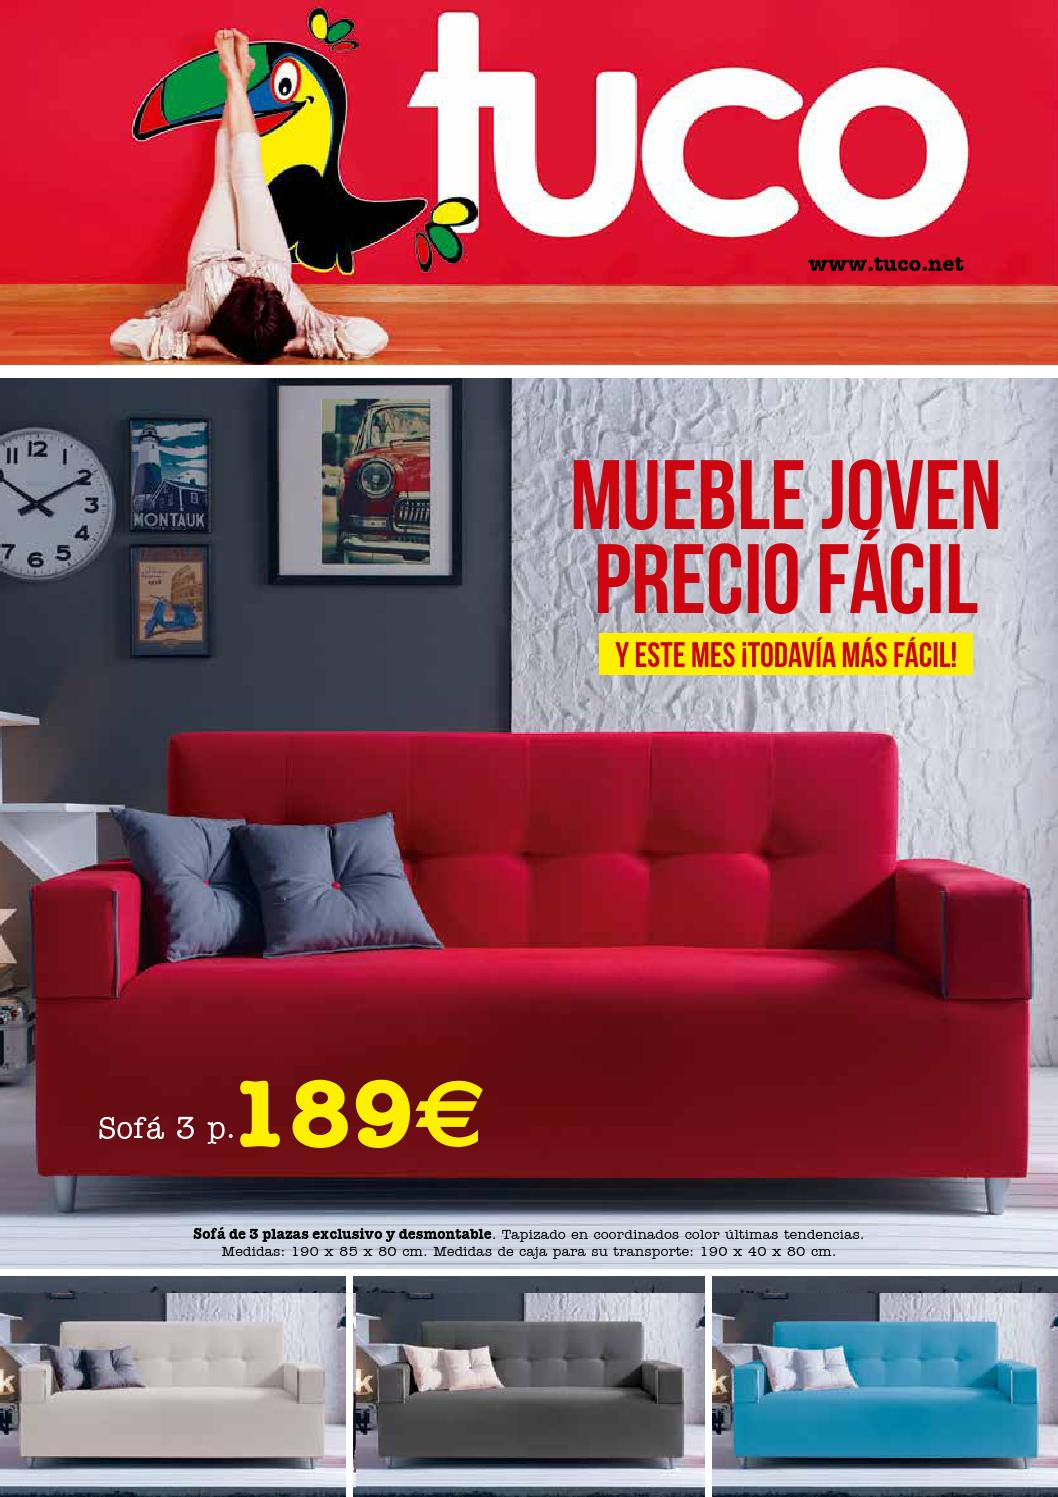 Mueble joven tuco by losdescuentos issuu for Mueble joven